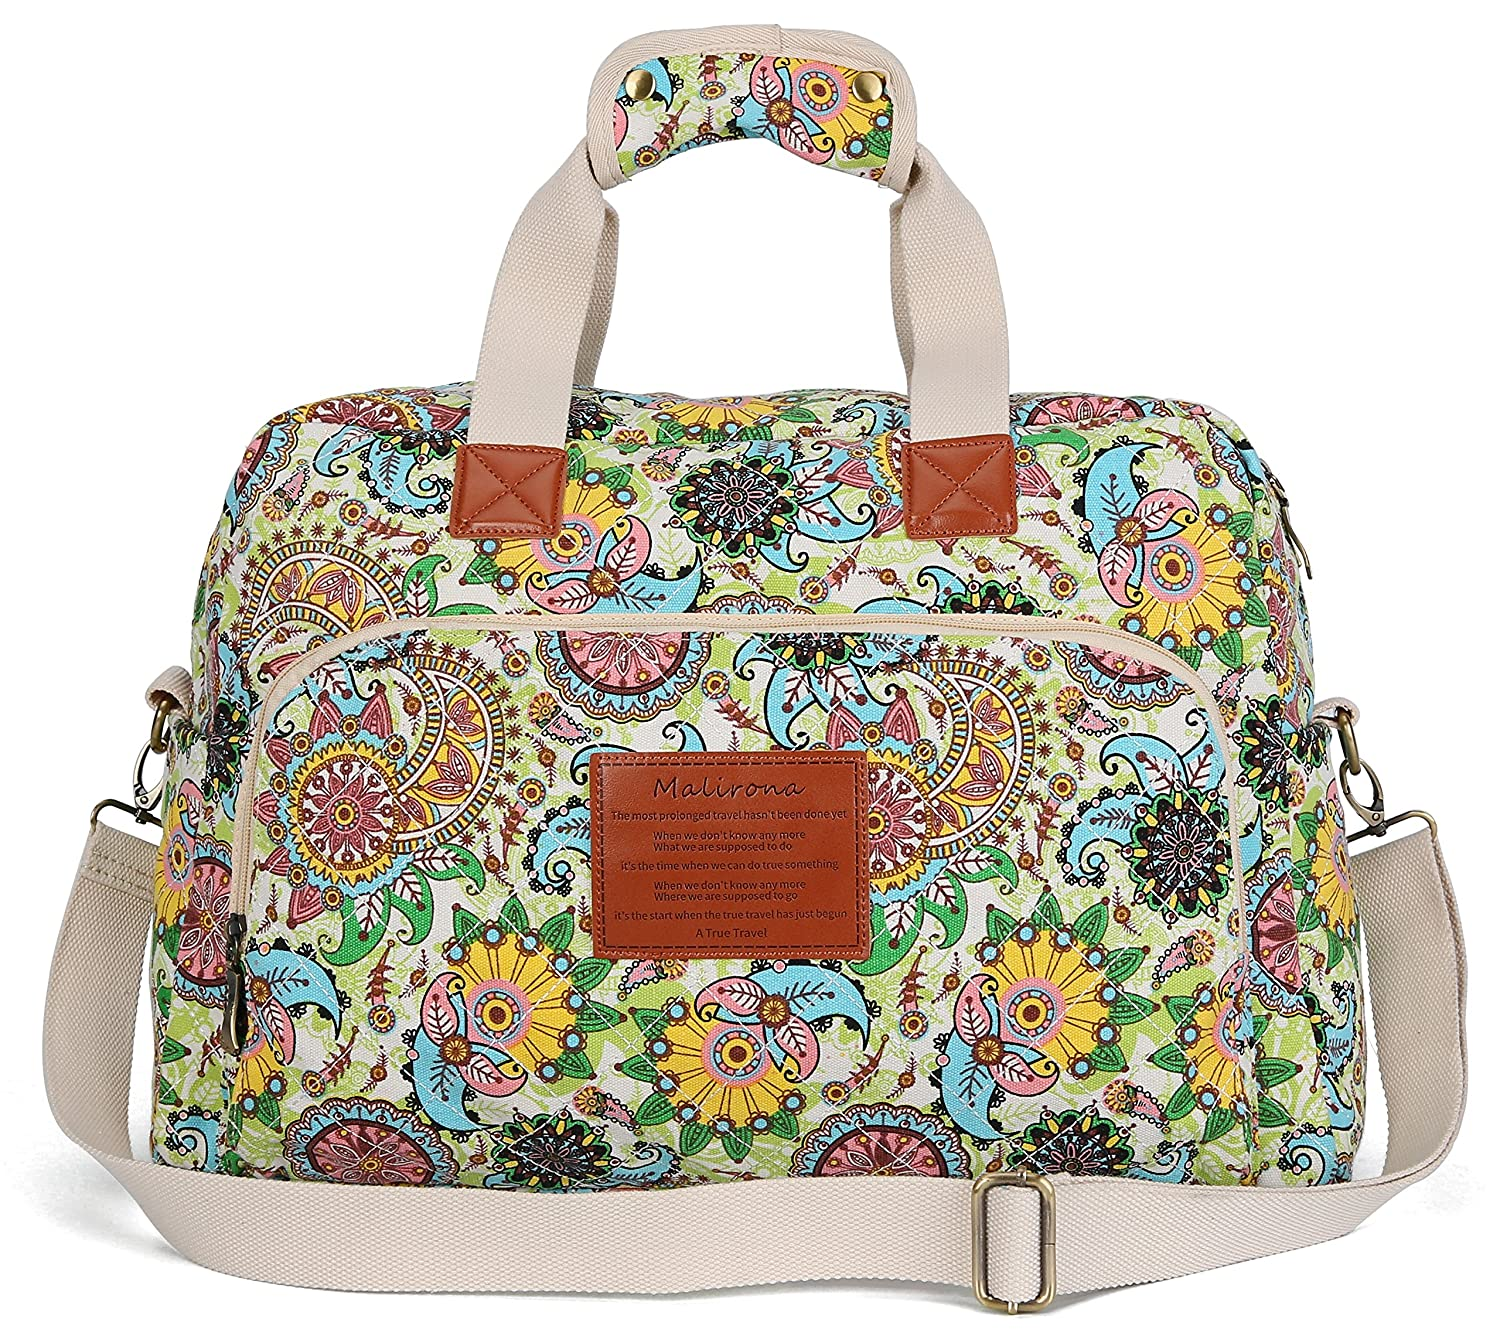 Malirona Canvas Overnight Bag Women Weekender Bag Carry On Travel Duffel Bag Floral Design (Flower) KJ014-Flower